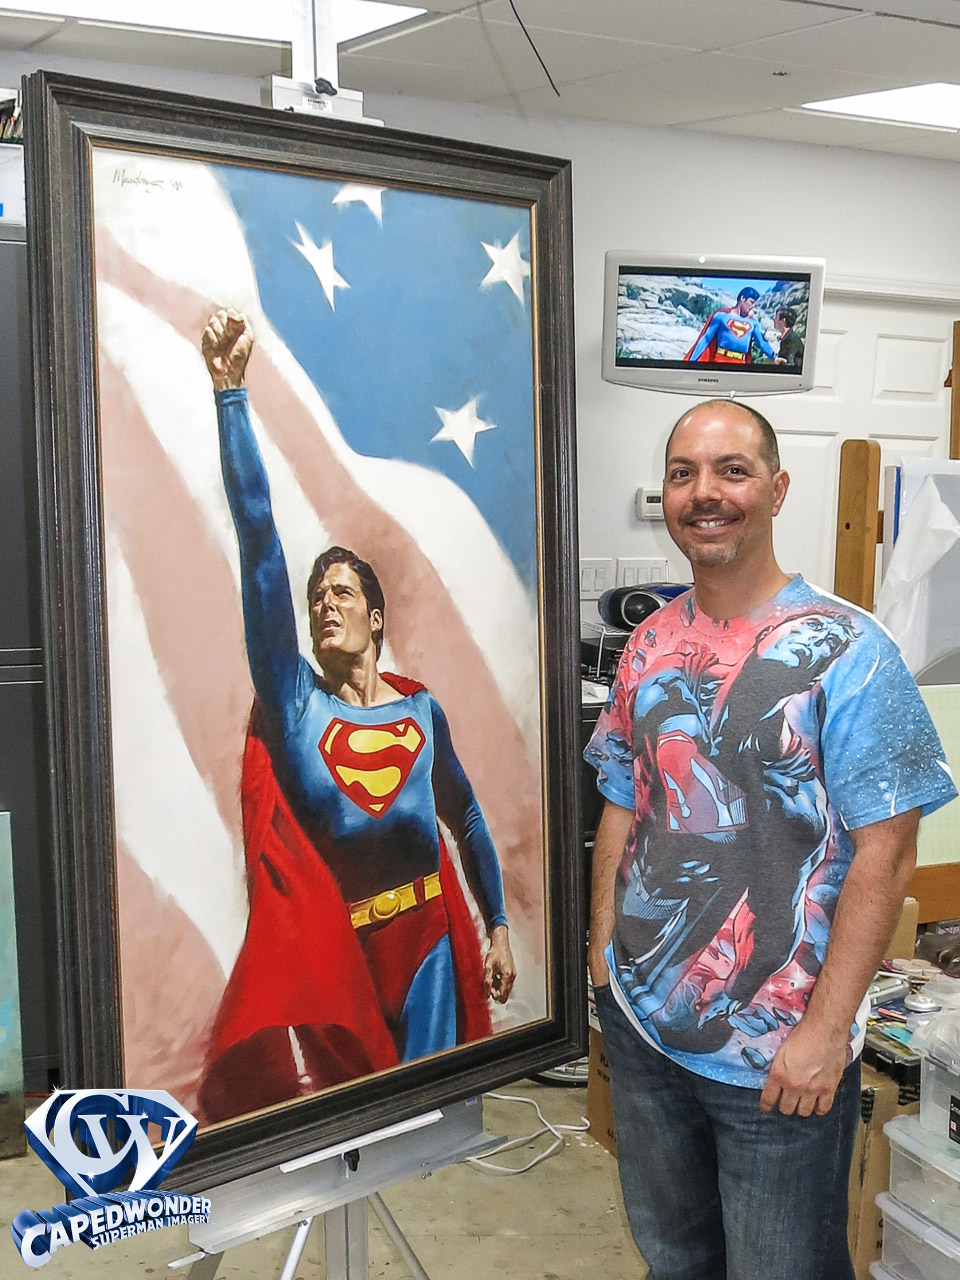 CW-STM-Reeve-Superman-flag-painting-Meadows-1-5